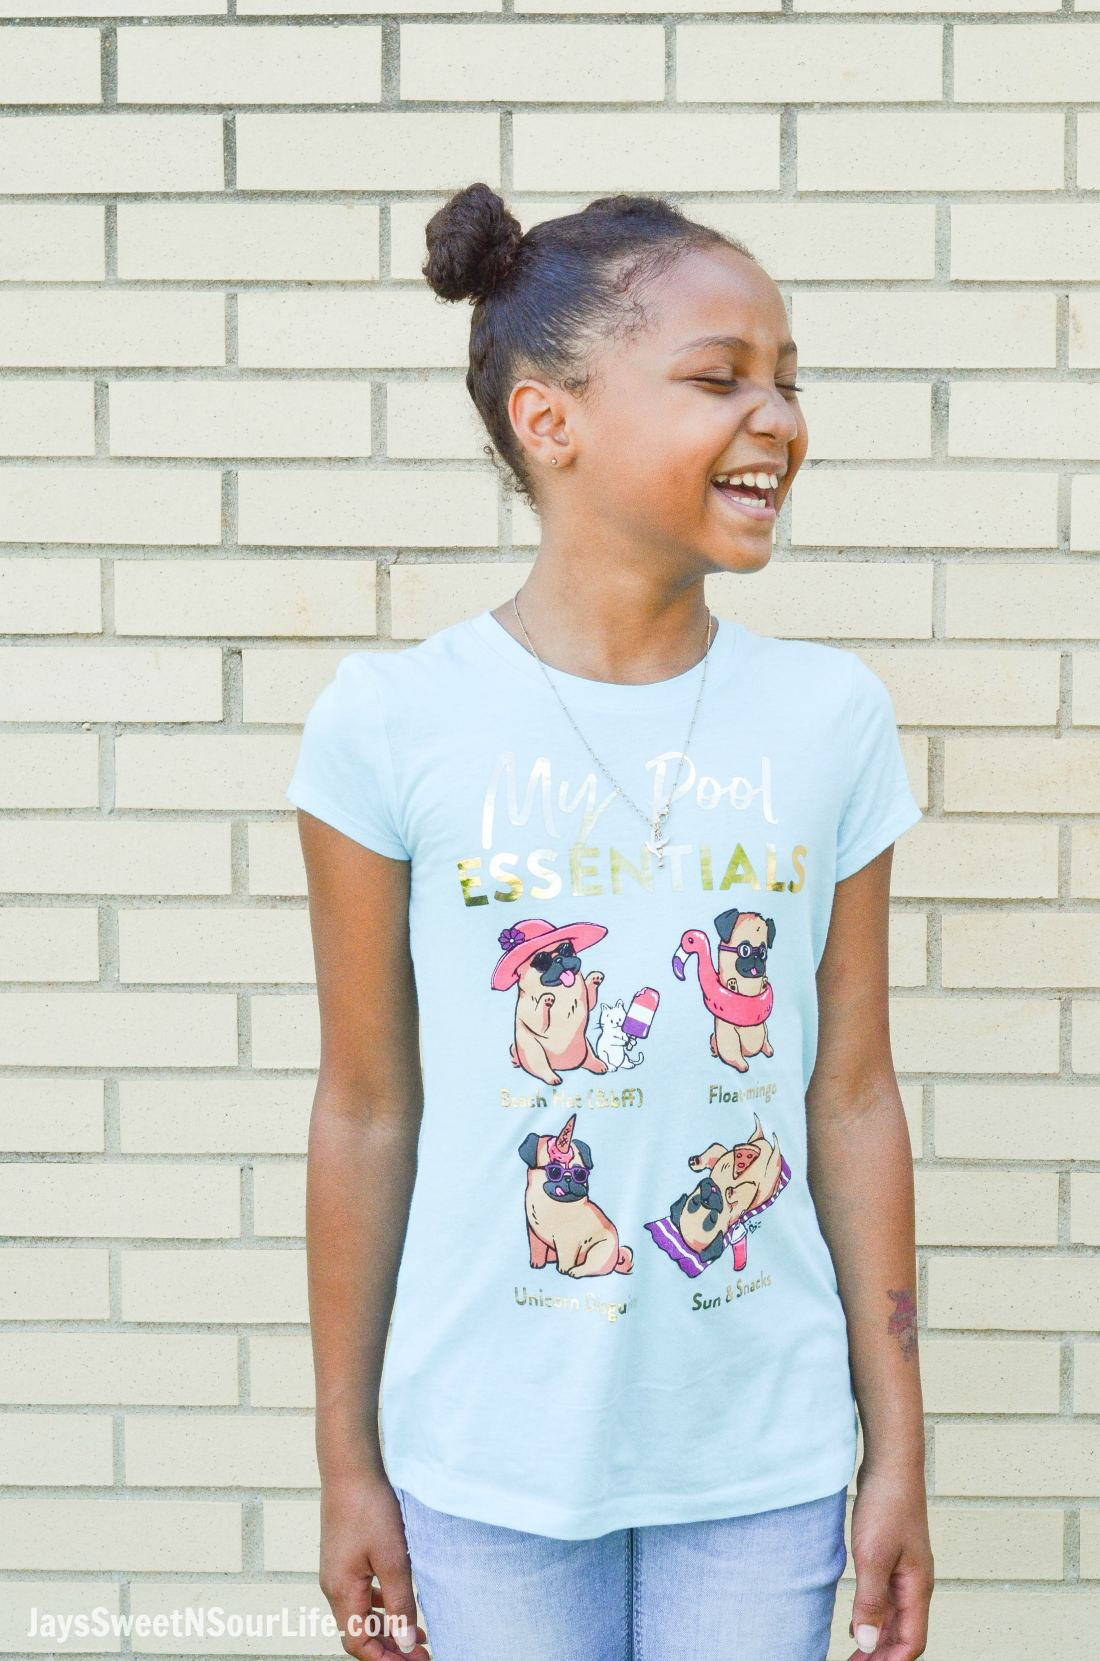 Justice Back To School Shirt Lifestyle Infront of Wall. Back To School Must Have Fashion For Tweens via JaysSweetNSourLife.com